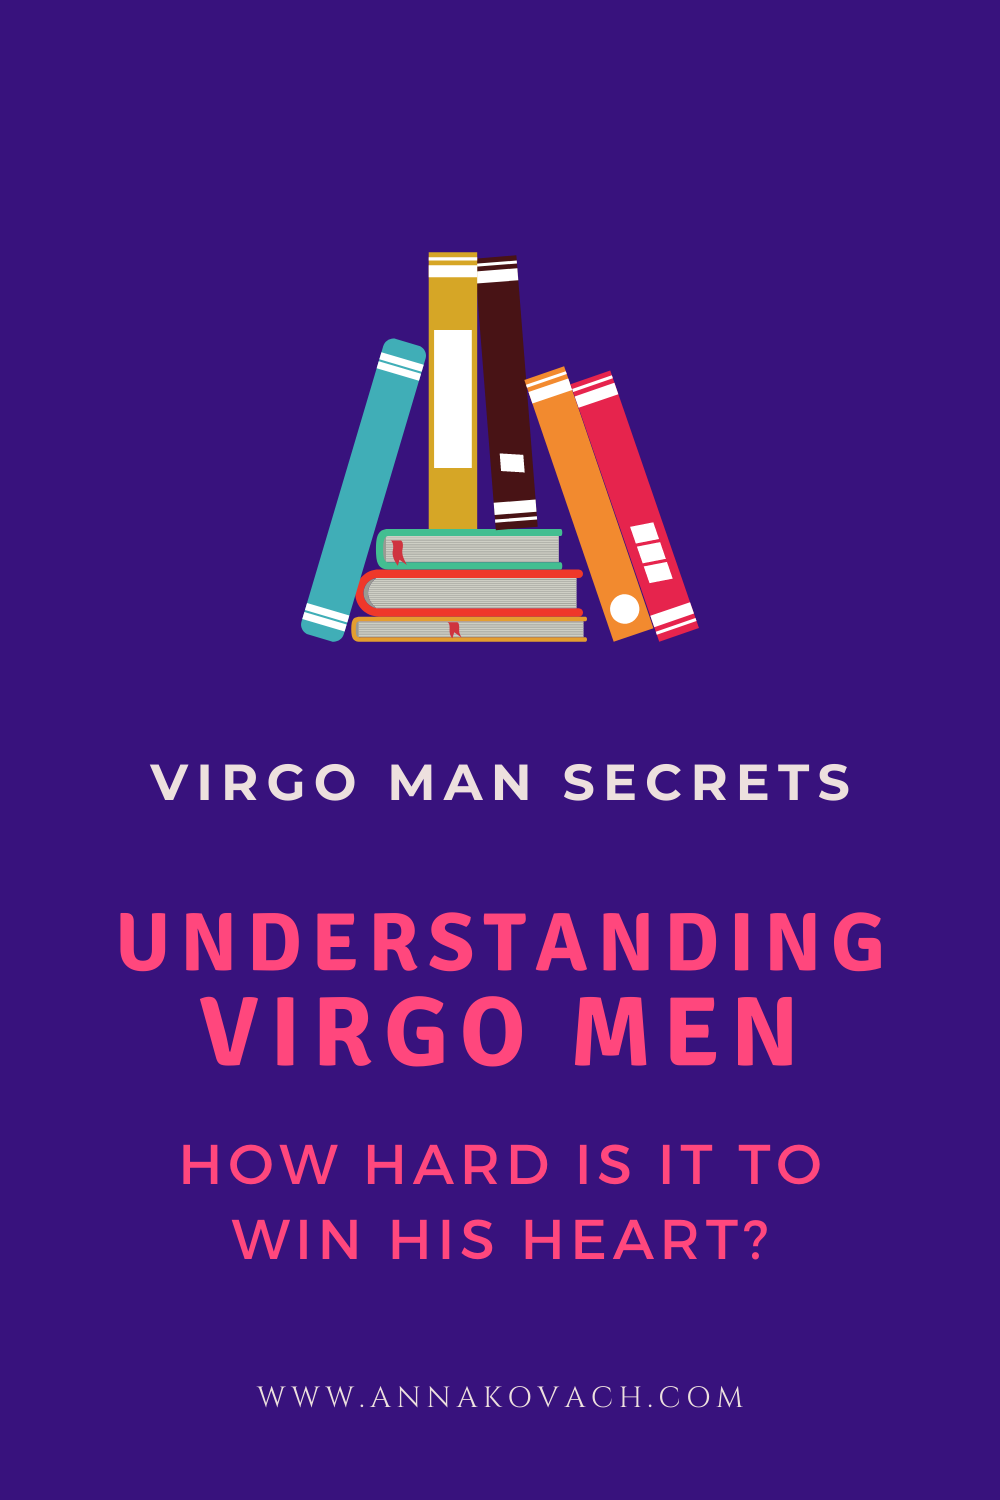 Are Virgo Men Difficult? How Hard Is It to Win His Heart